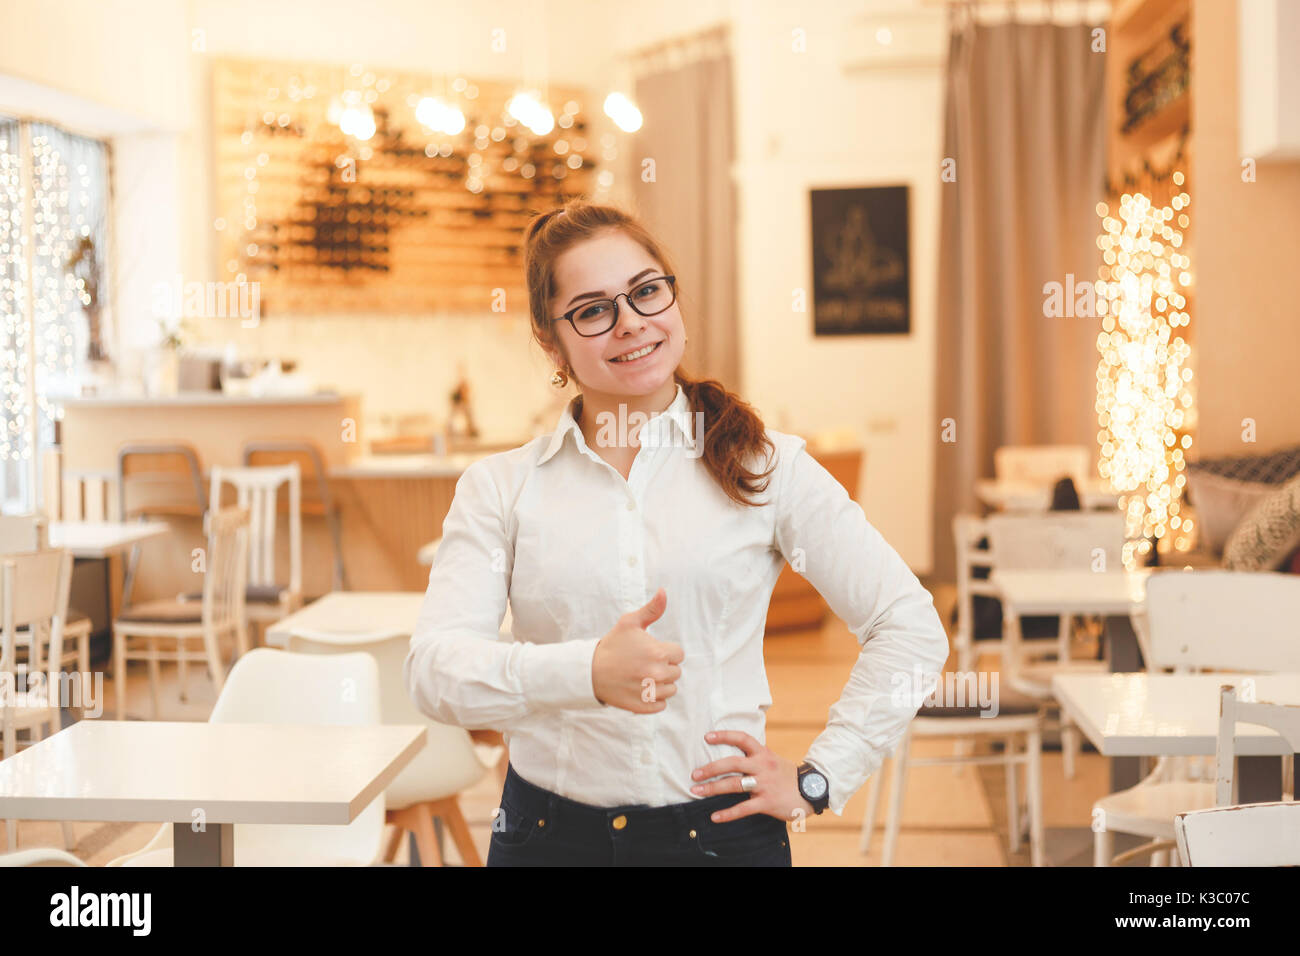 Successful Restaurant Manager Small Business Owner At Work